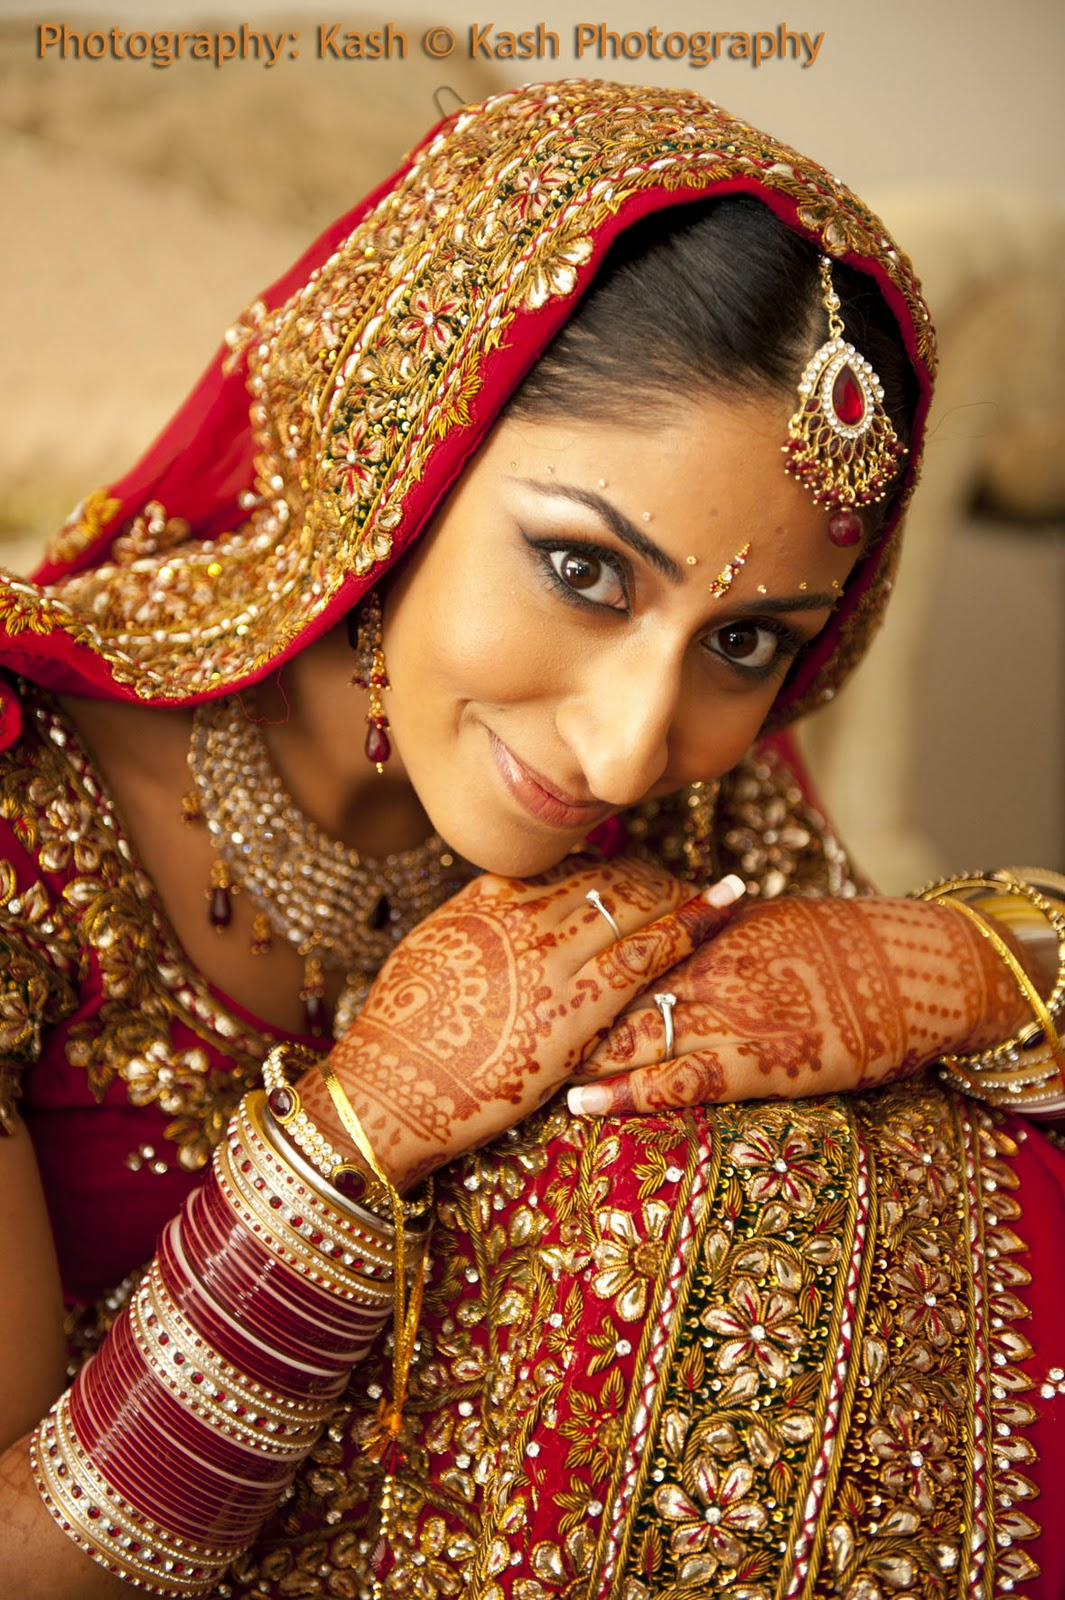 symbols and traditions of hindu wedding Symbols and traditions- hindu wedding in the hindu culture, the marriage doesn't just symbolize the love of a happy couple, but also of the coming together of two.